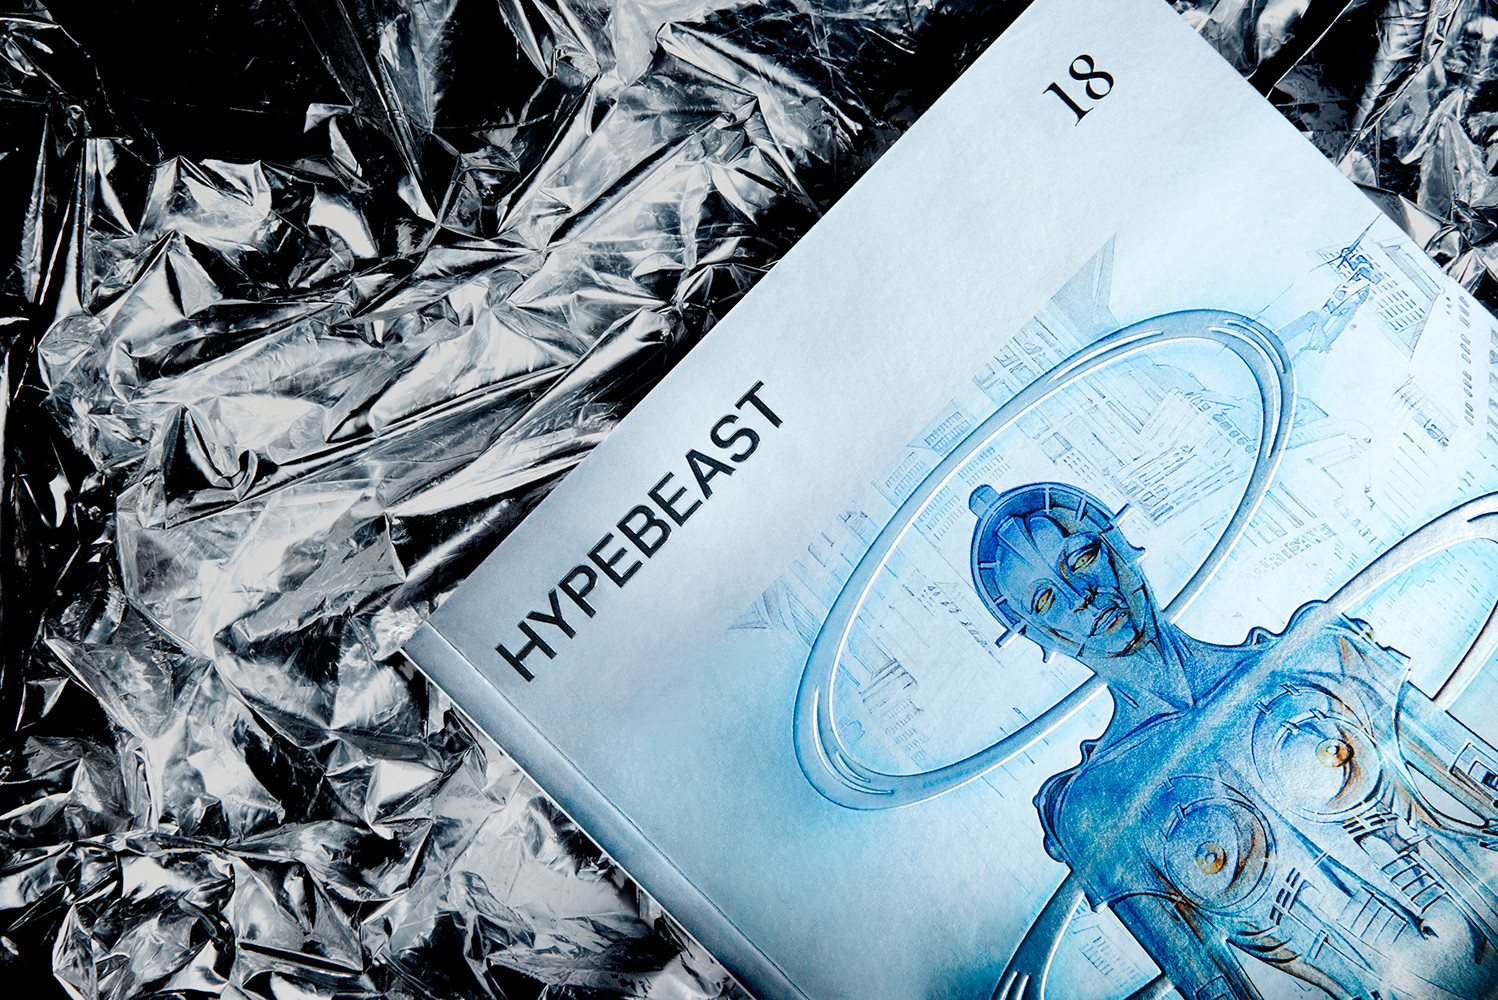 HYPEBEAST Magazine Issue 18: The Sensory issue